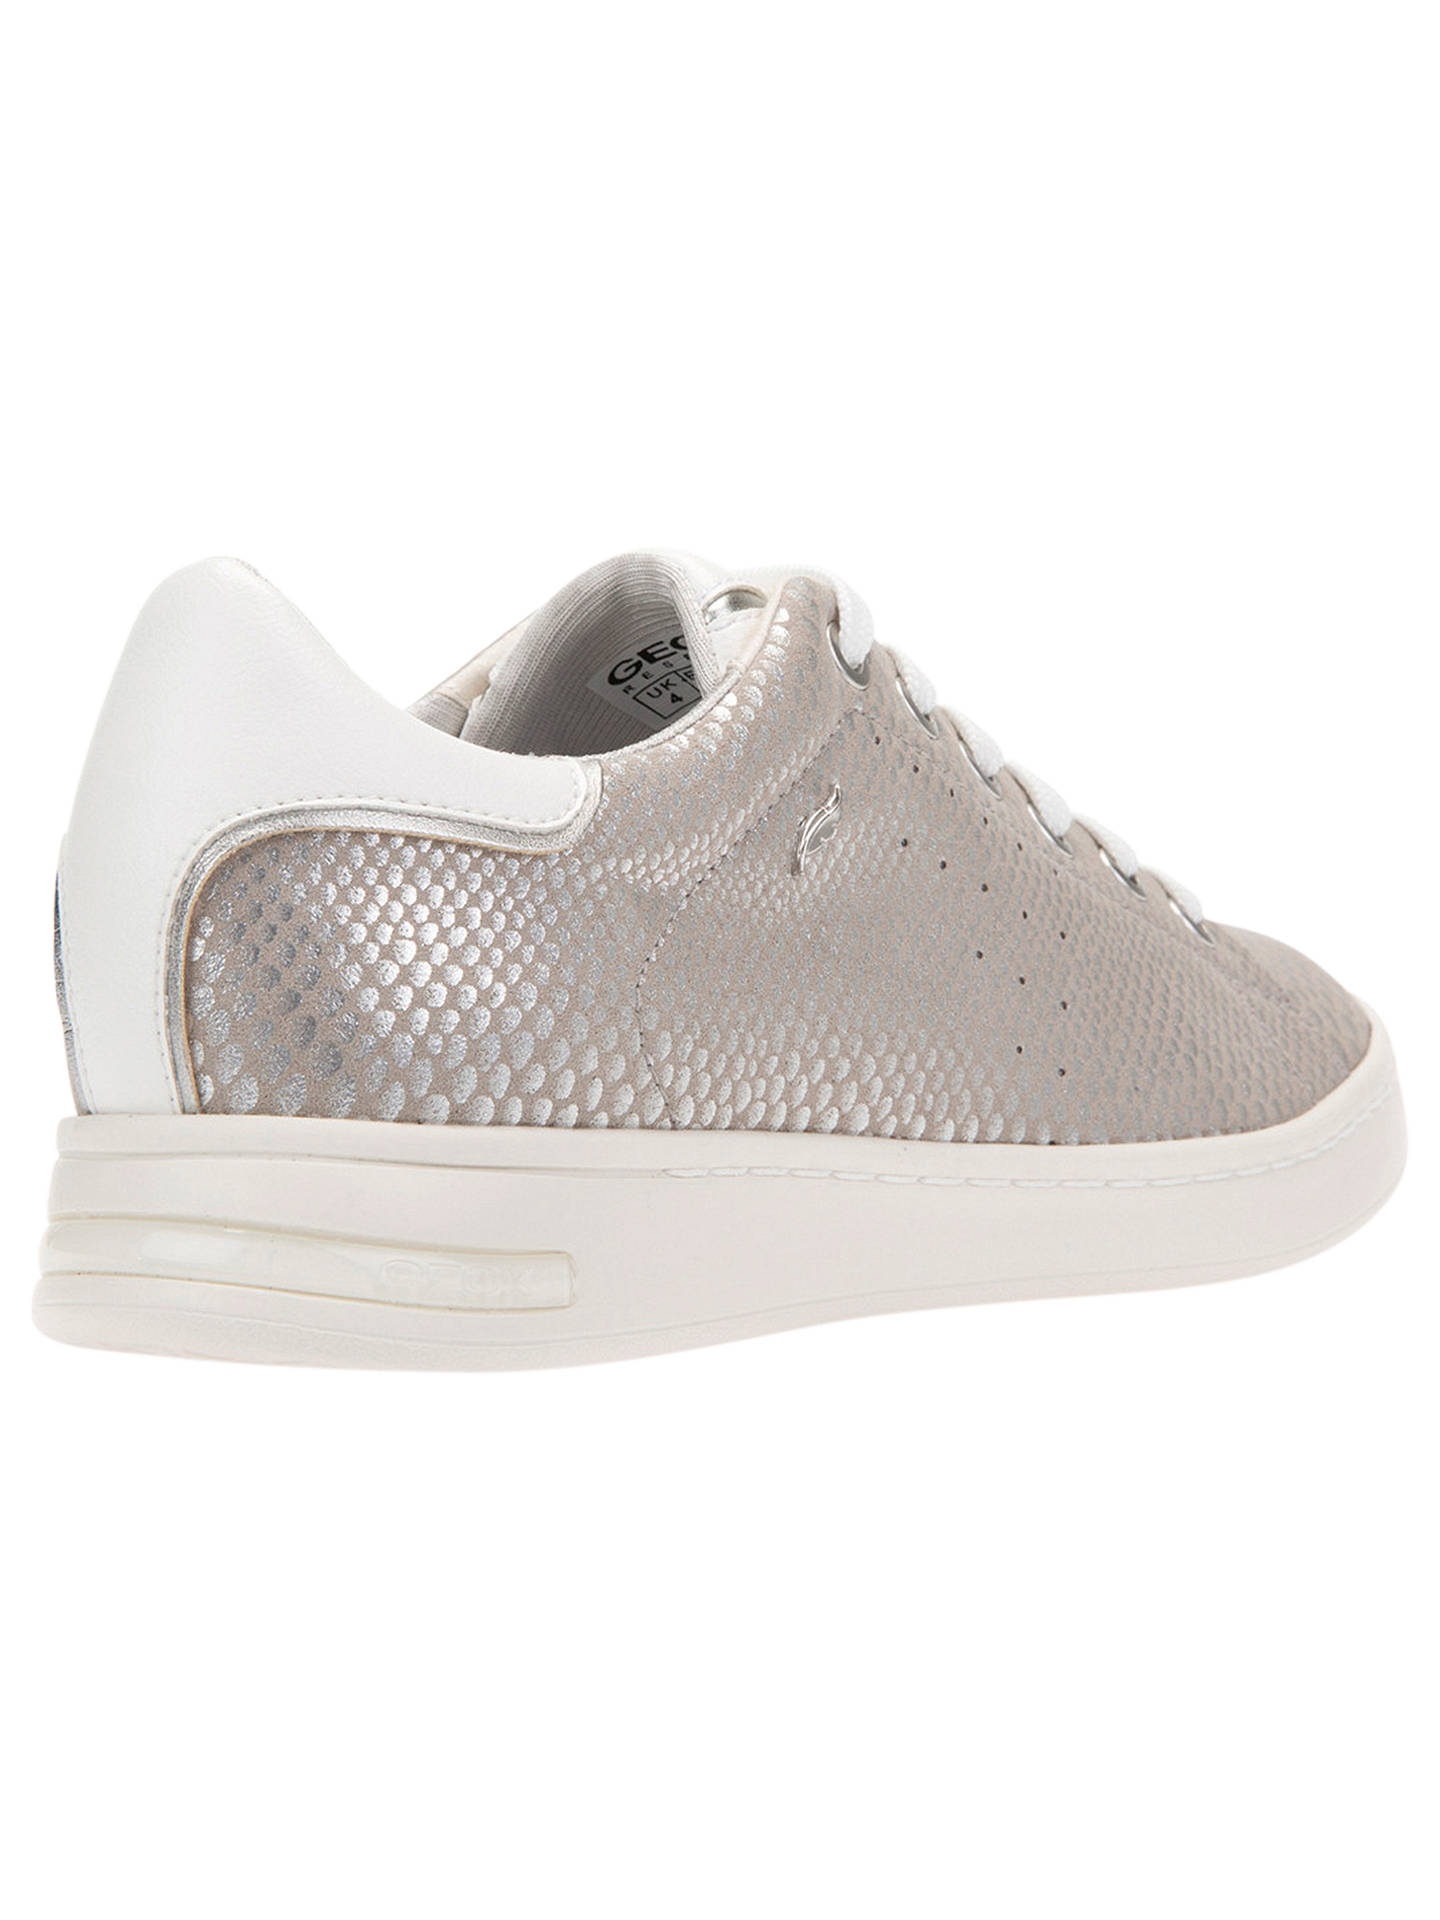 c0abfac60e ... Buy Geox Women's Jaysen Lace Up Trainers, Silver, 5 Online at  johnlewis. ...